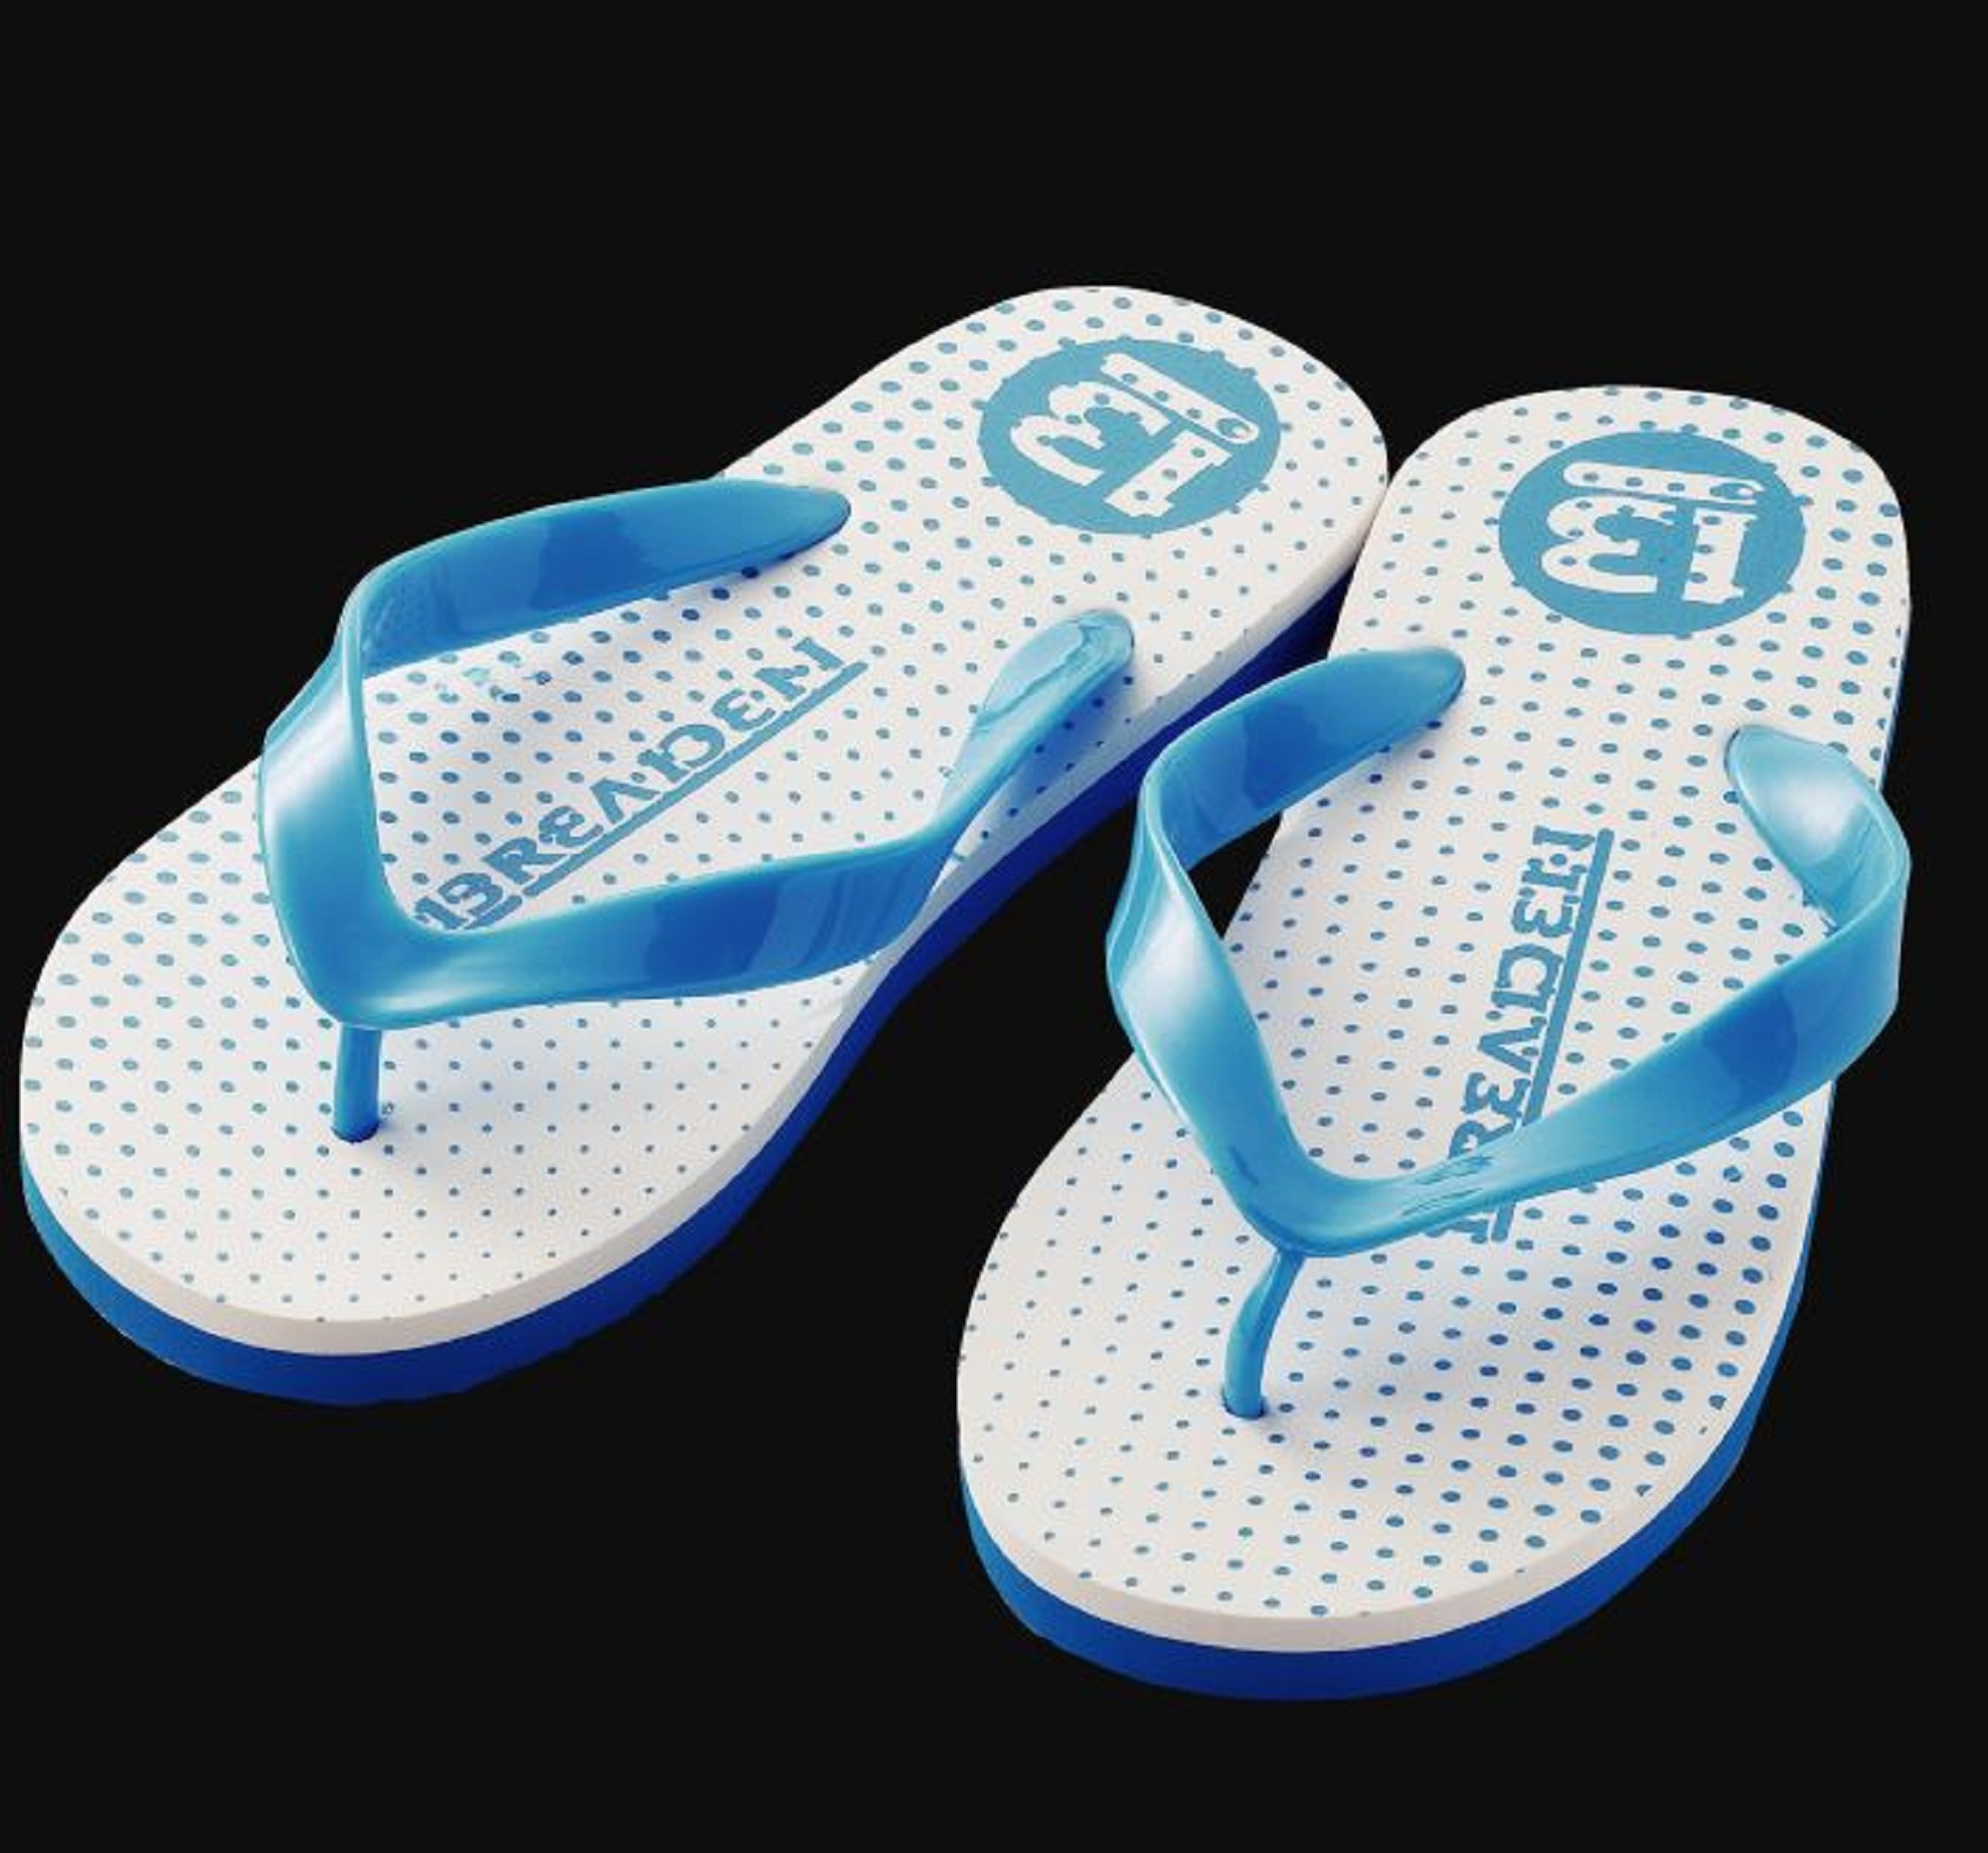 Breaden Beach Sandals Size 26cm 03 (7294)